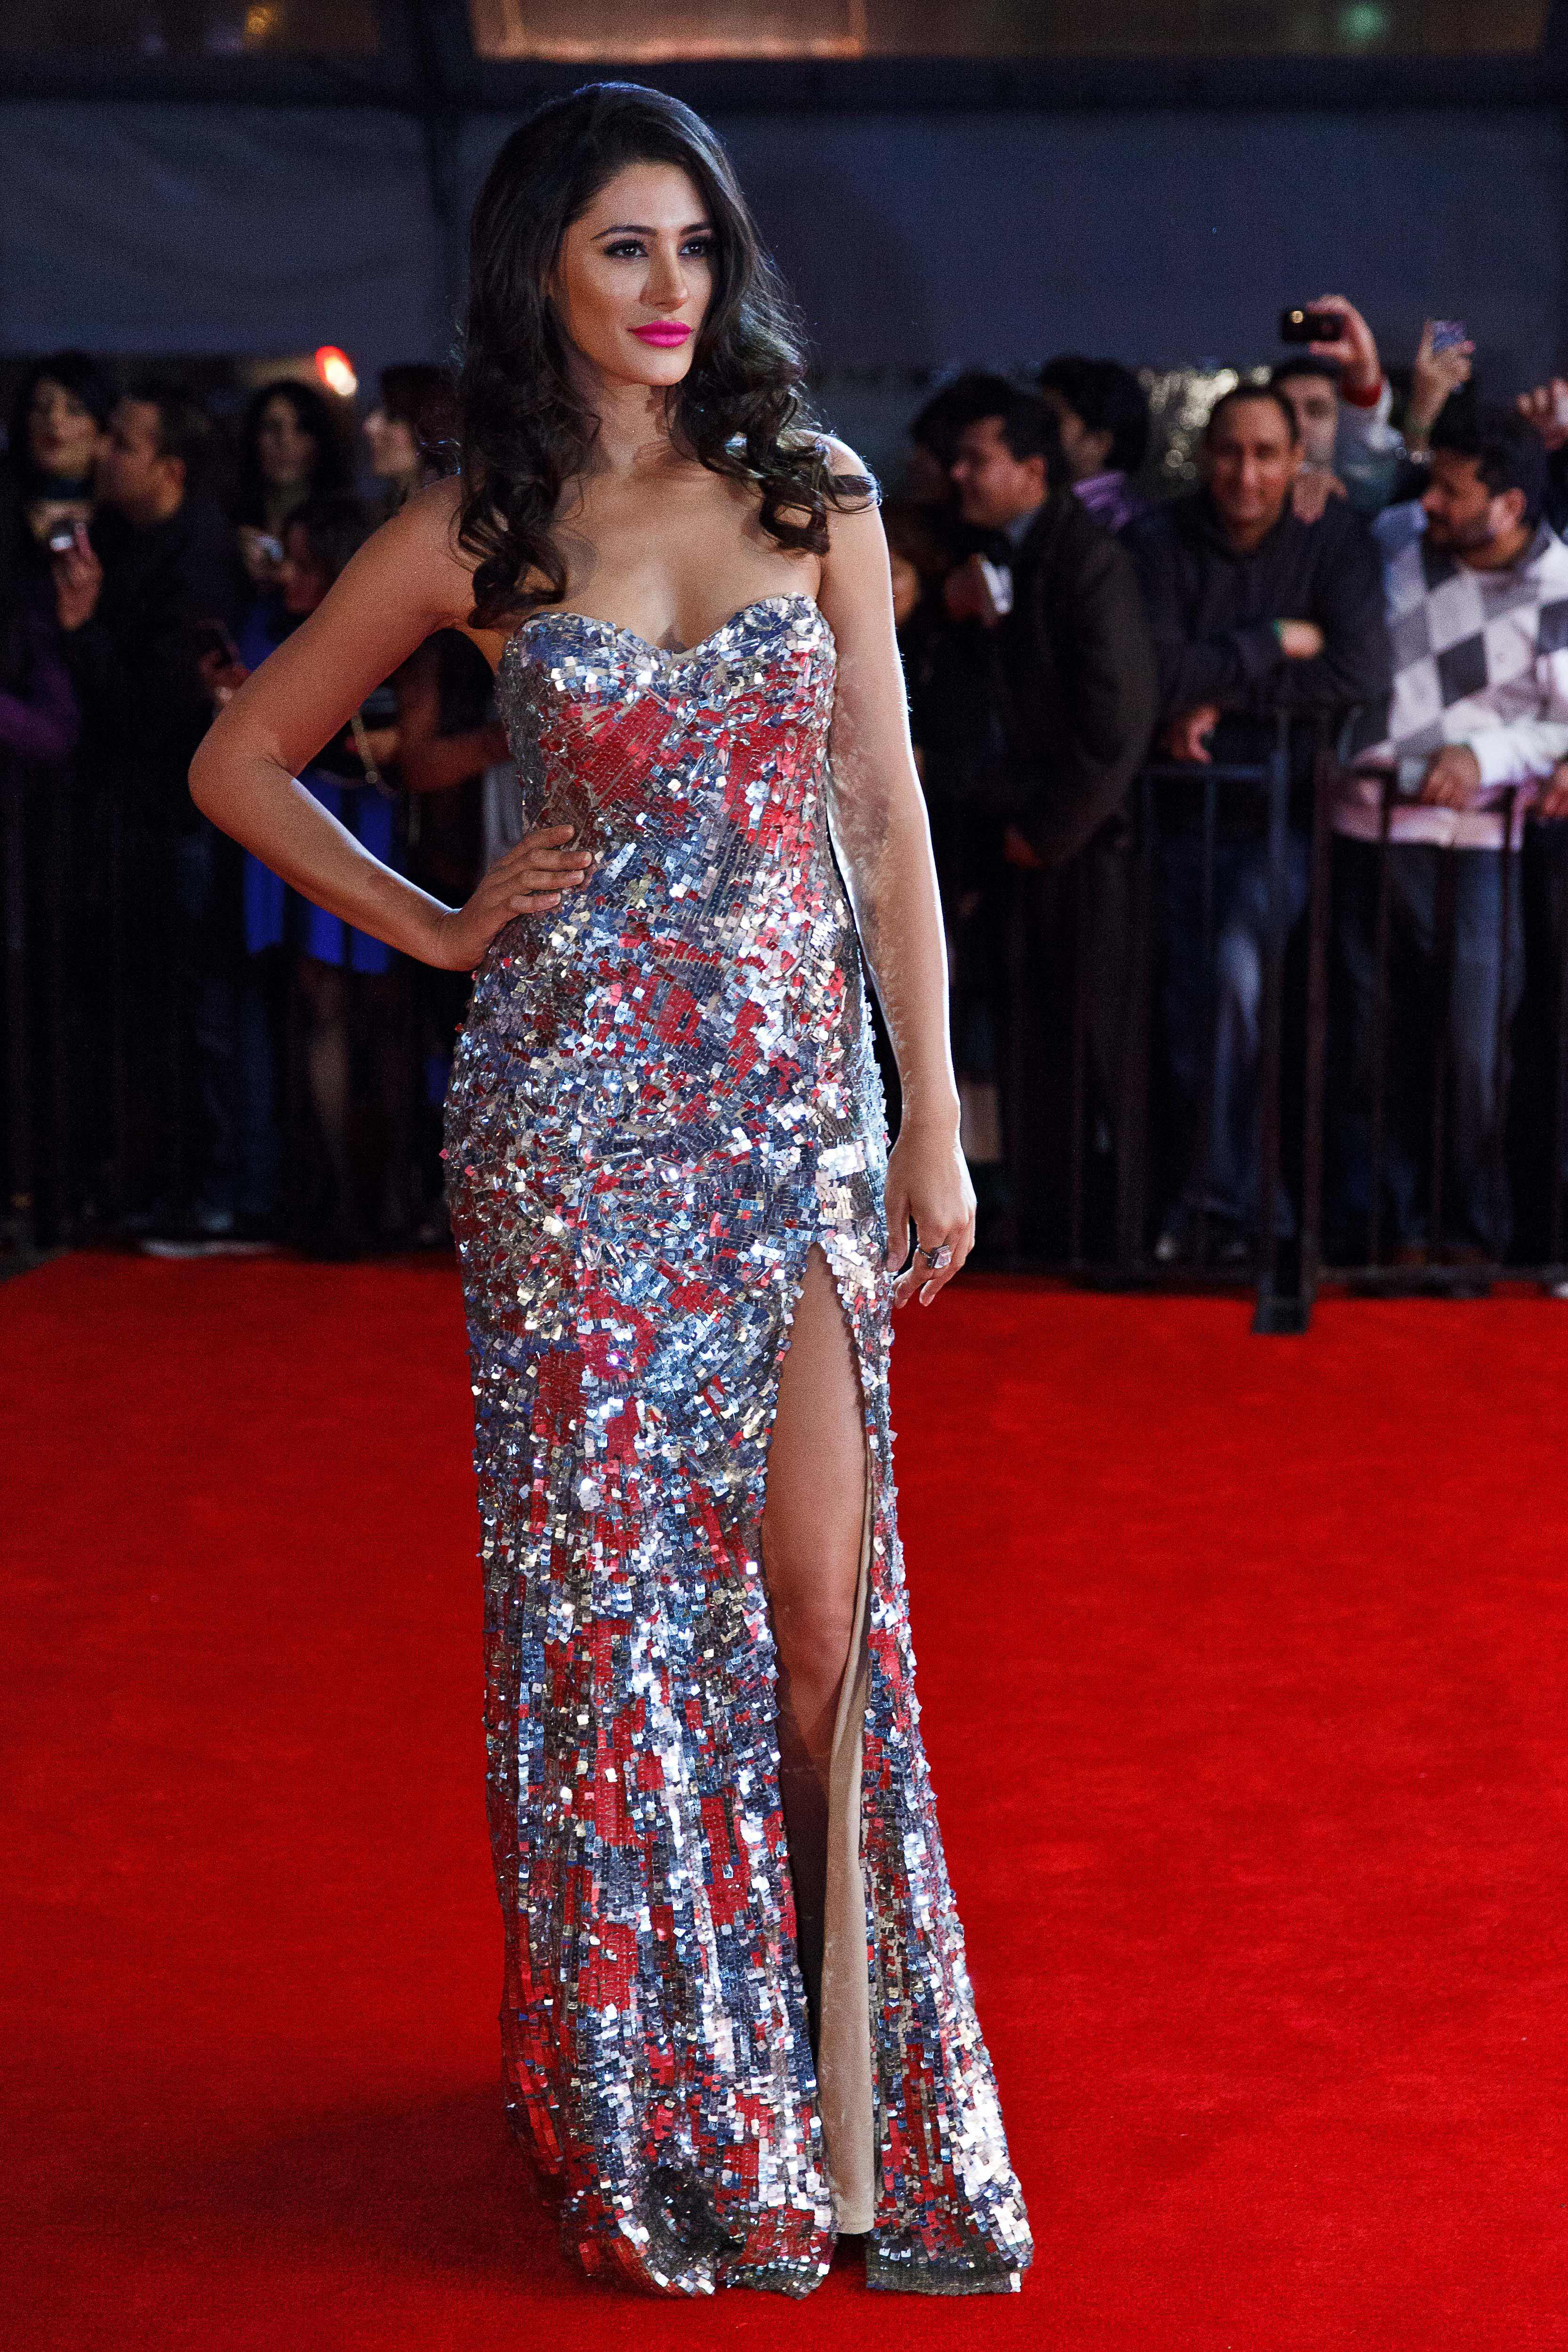 2013 Times of India Film Awards (TOIFA) in Vancouver, BC, Canada